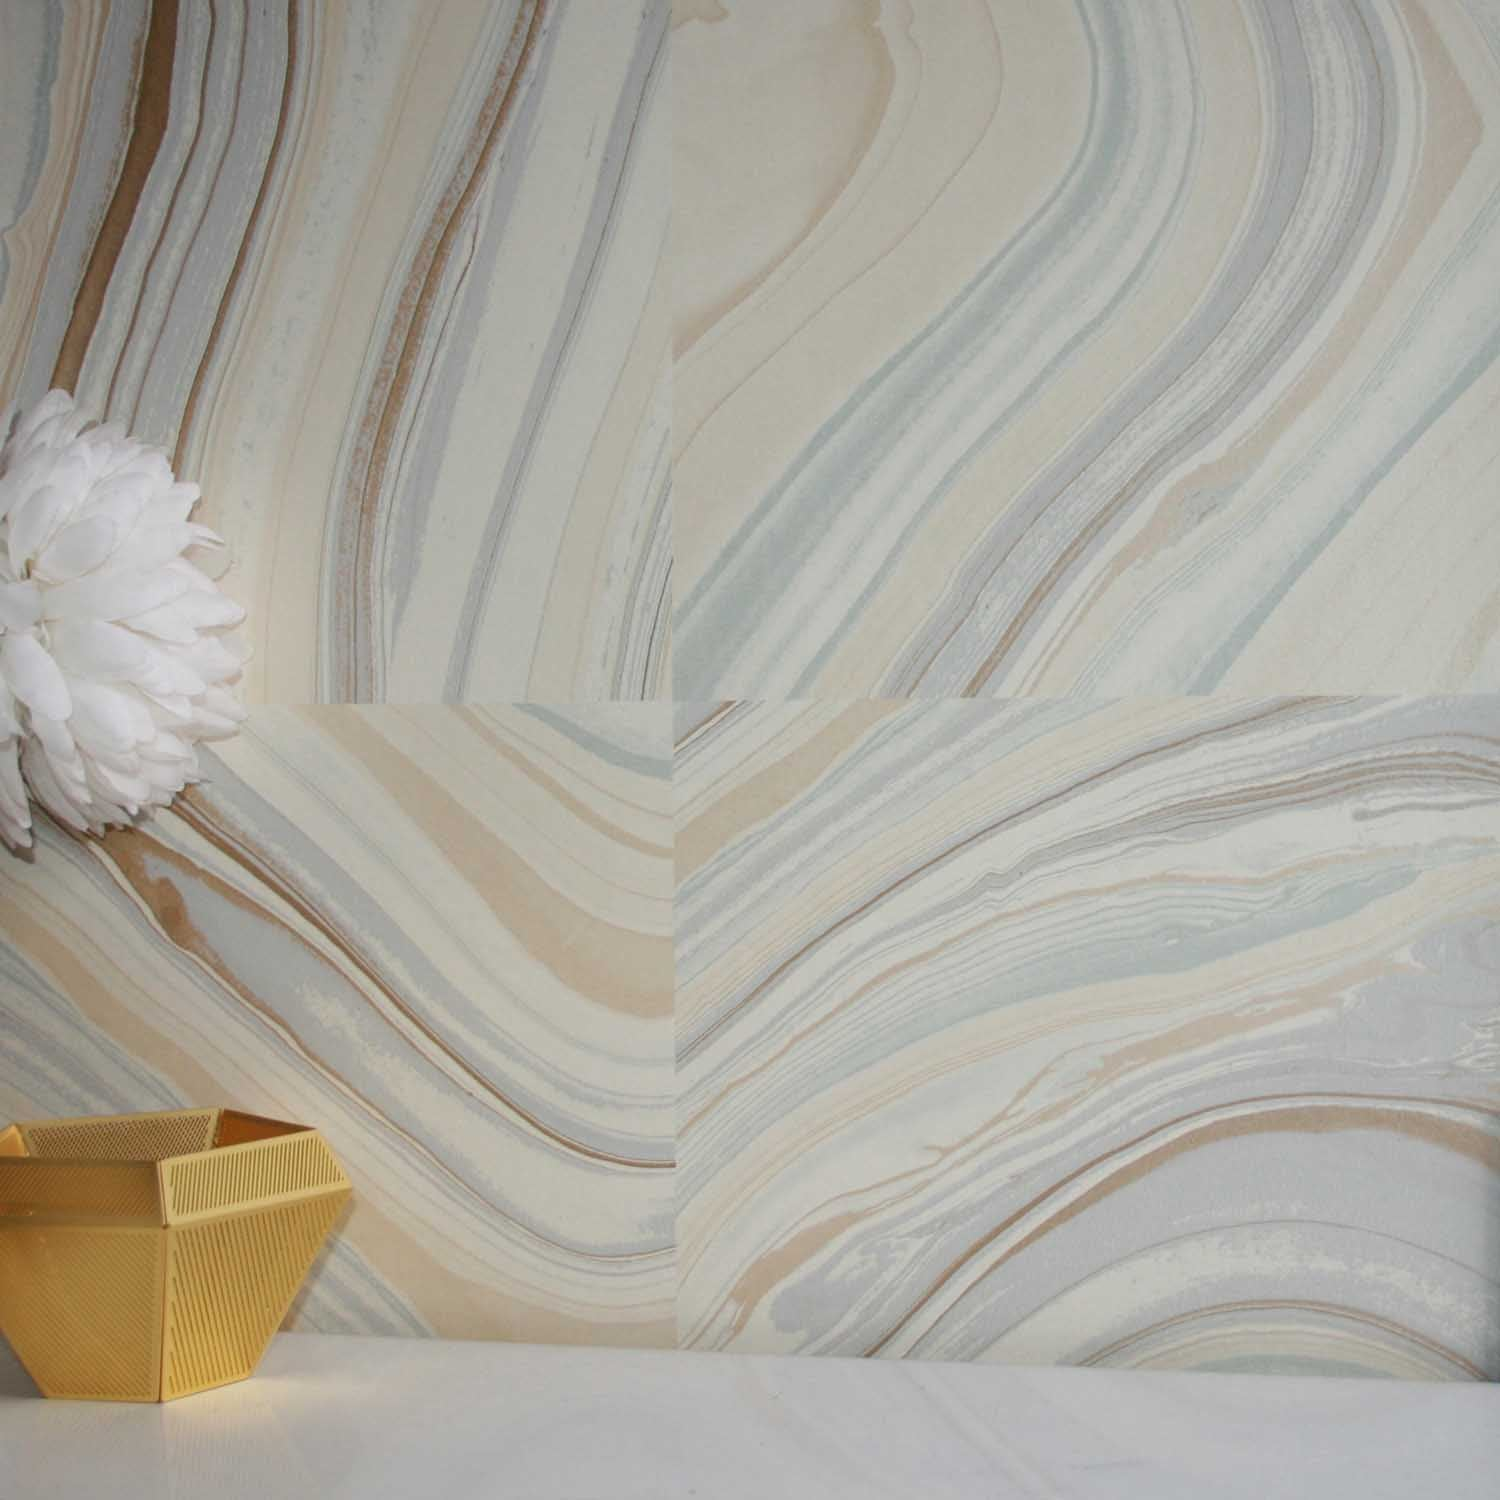 Wonderful Wallpaper Marble Paper - Agate_yellow_sand_beige_dark_grey_white_and_irridescent_pearl_5  Picture_100754.jpg?v\u003d1517005806